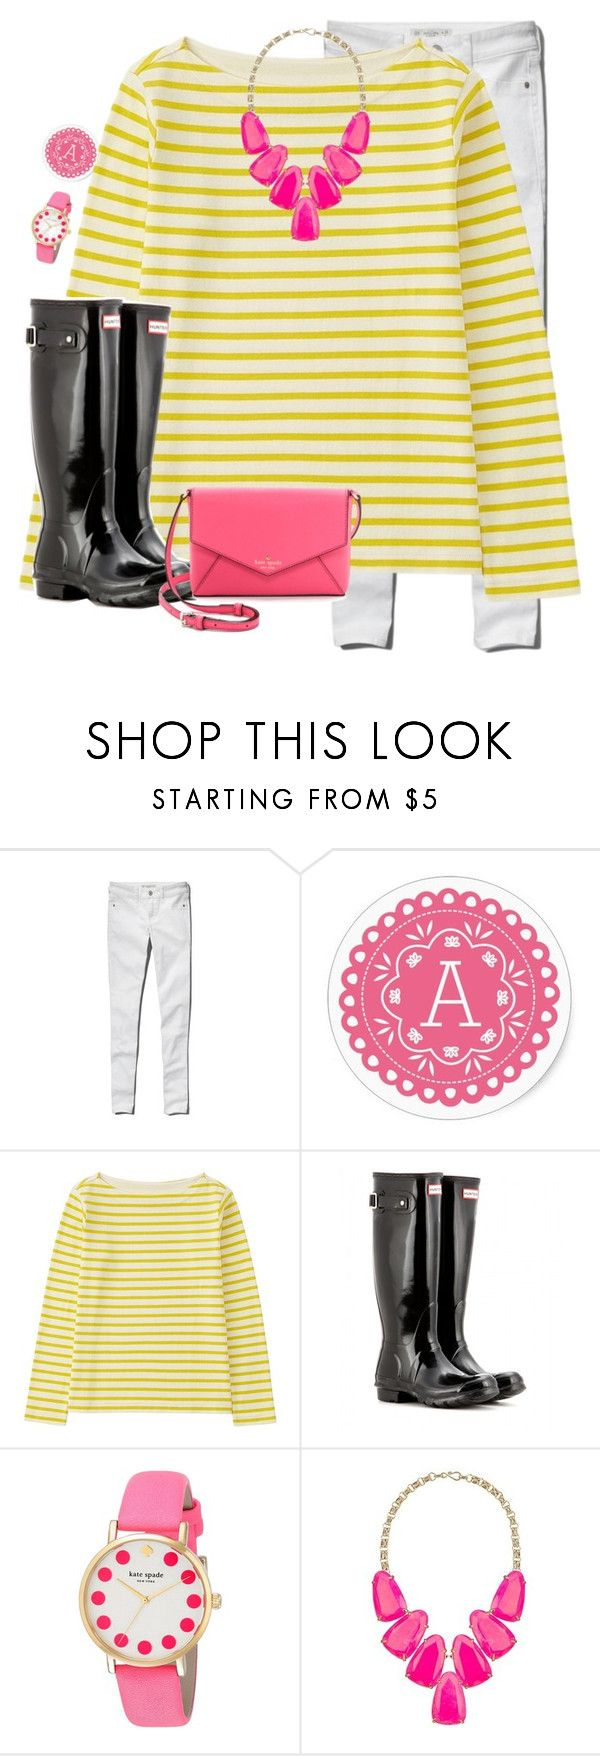 """Well if you want to give us a two hour delay, I'm fine with that "" by avamariebrown ❤ liked on Polyvore featuring Abercrombie & Fitch, Uniqlo, Hunter, Kate Spade, Kendra Scott, women's clothing, women's fashion, women, female and woman"